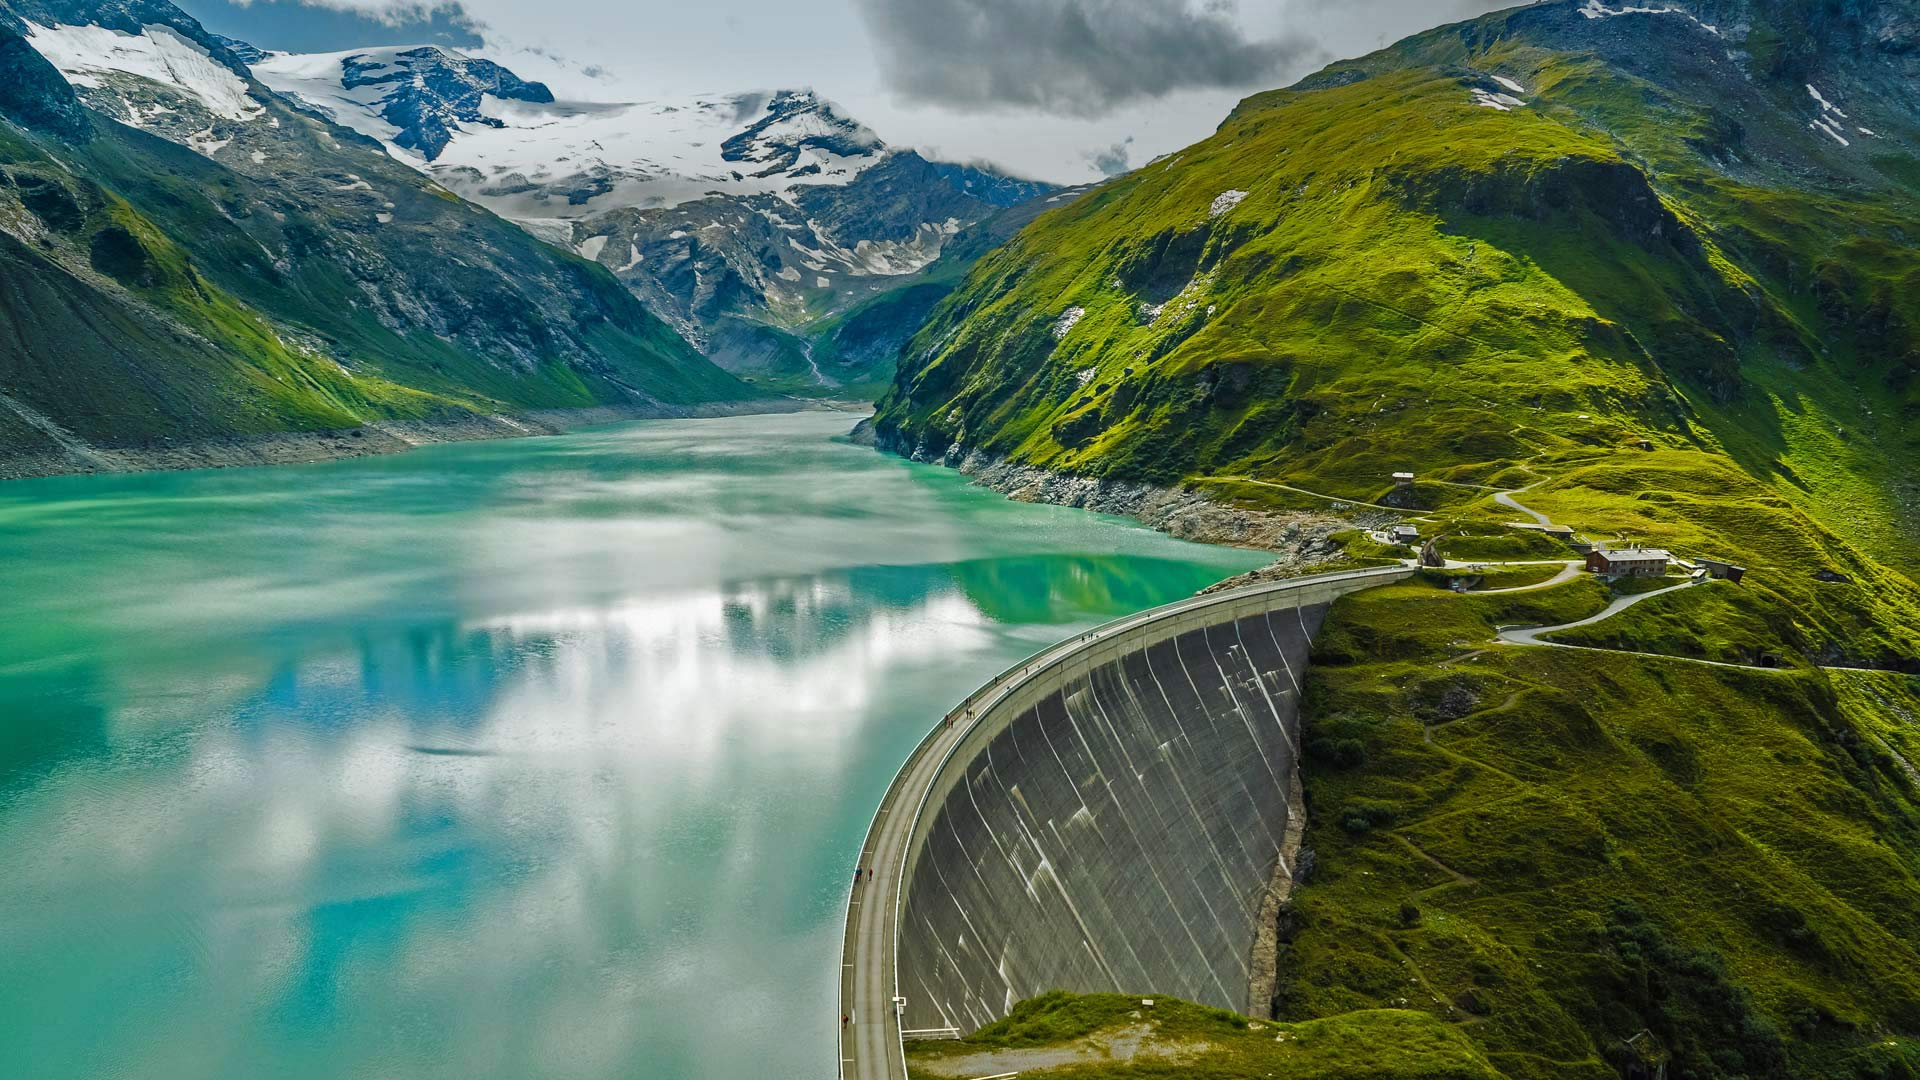 Kaprun Dam Bing Wallpaper Download 1920x1080